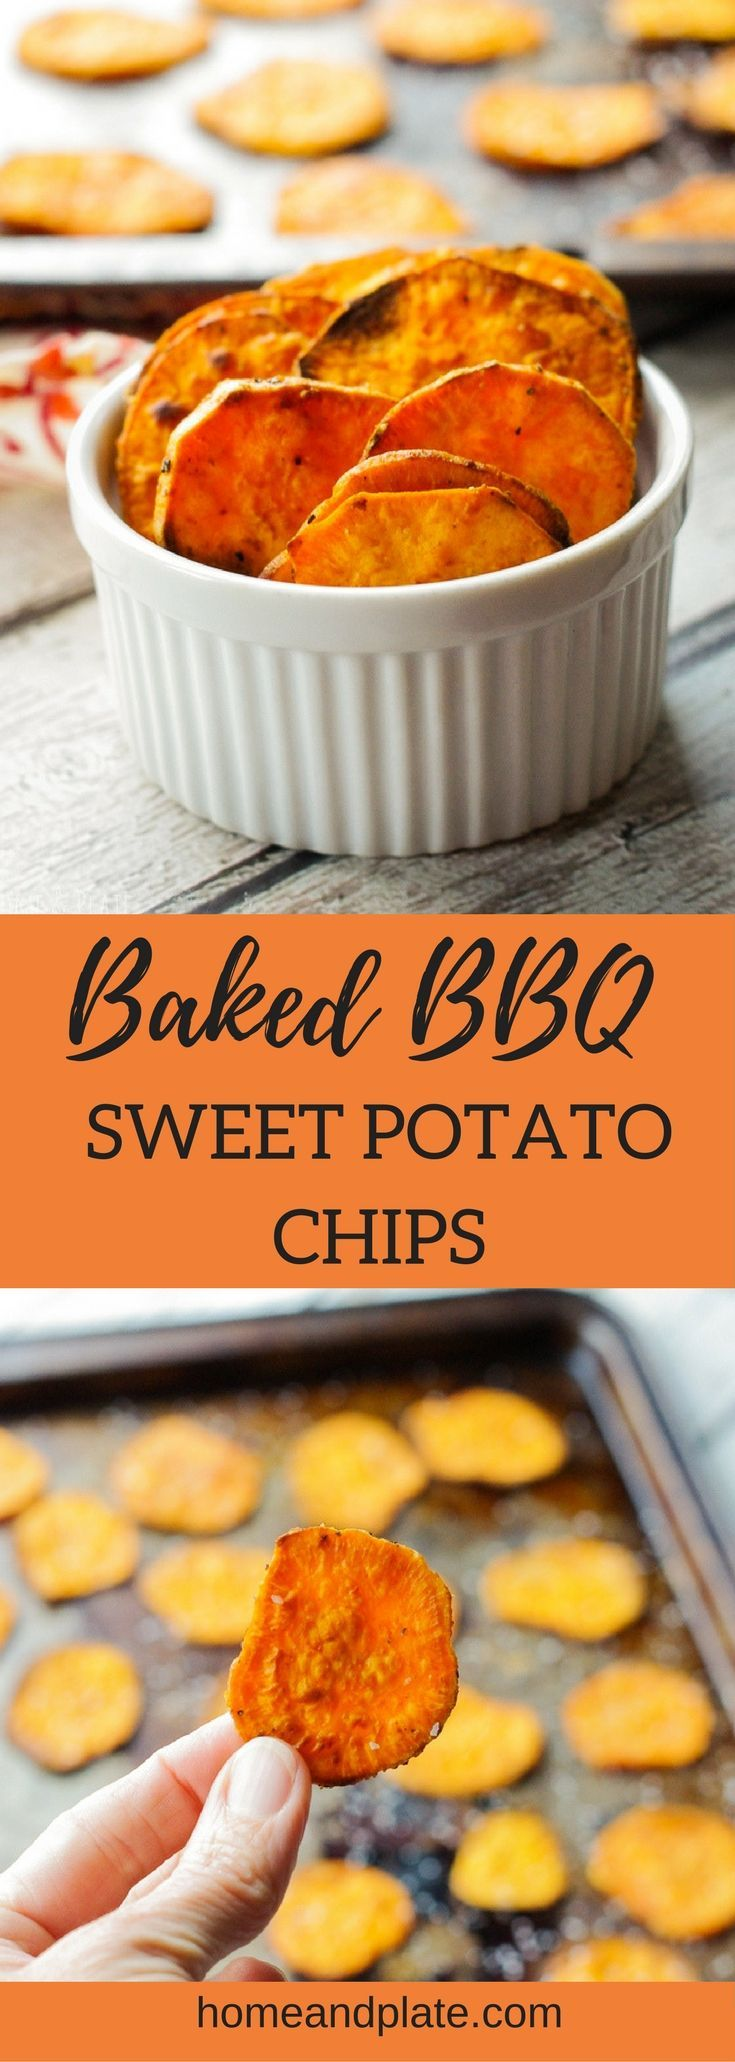 Baked BBQ Sweet Potato Chips | www.homeandplate.com | Sweet and spicy, these sweet potato chips are tossed in a barbecue seasoning and baked to perfection. #gameday #sweetpotatochips #bakedpotatochips